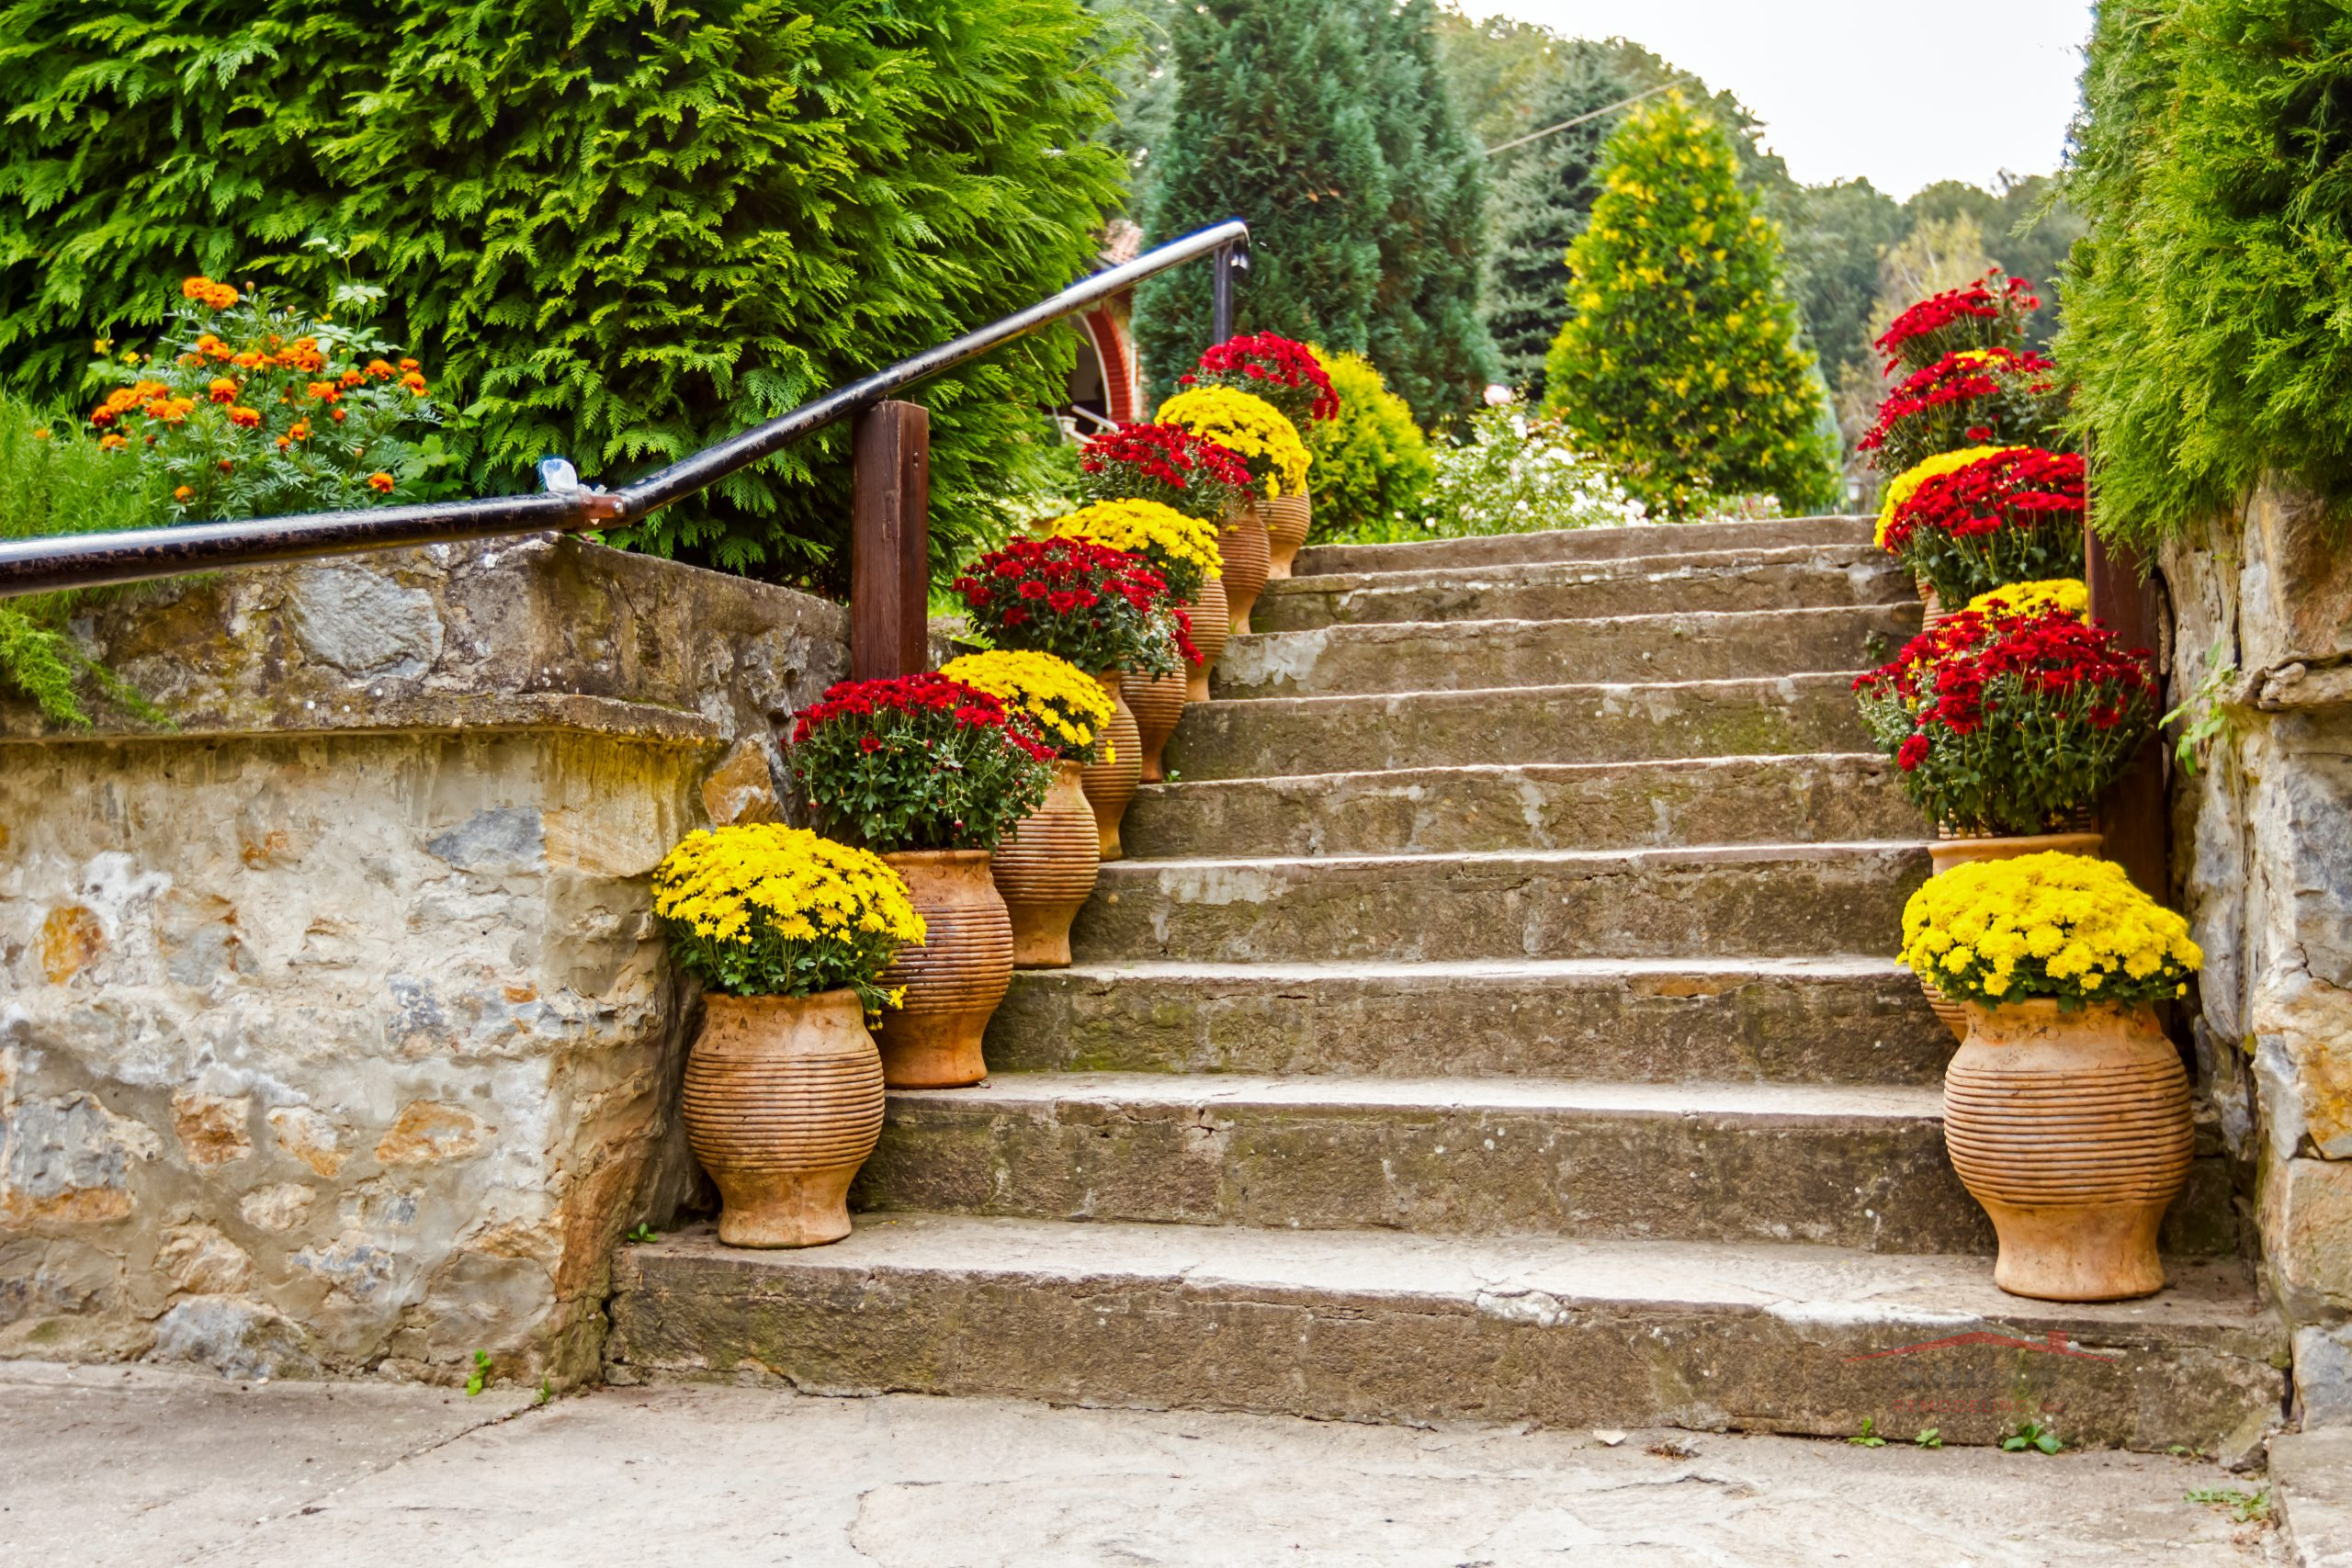 Home garden with decorated stairs